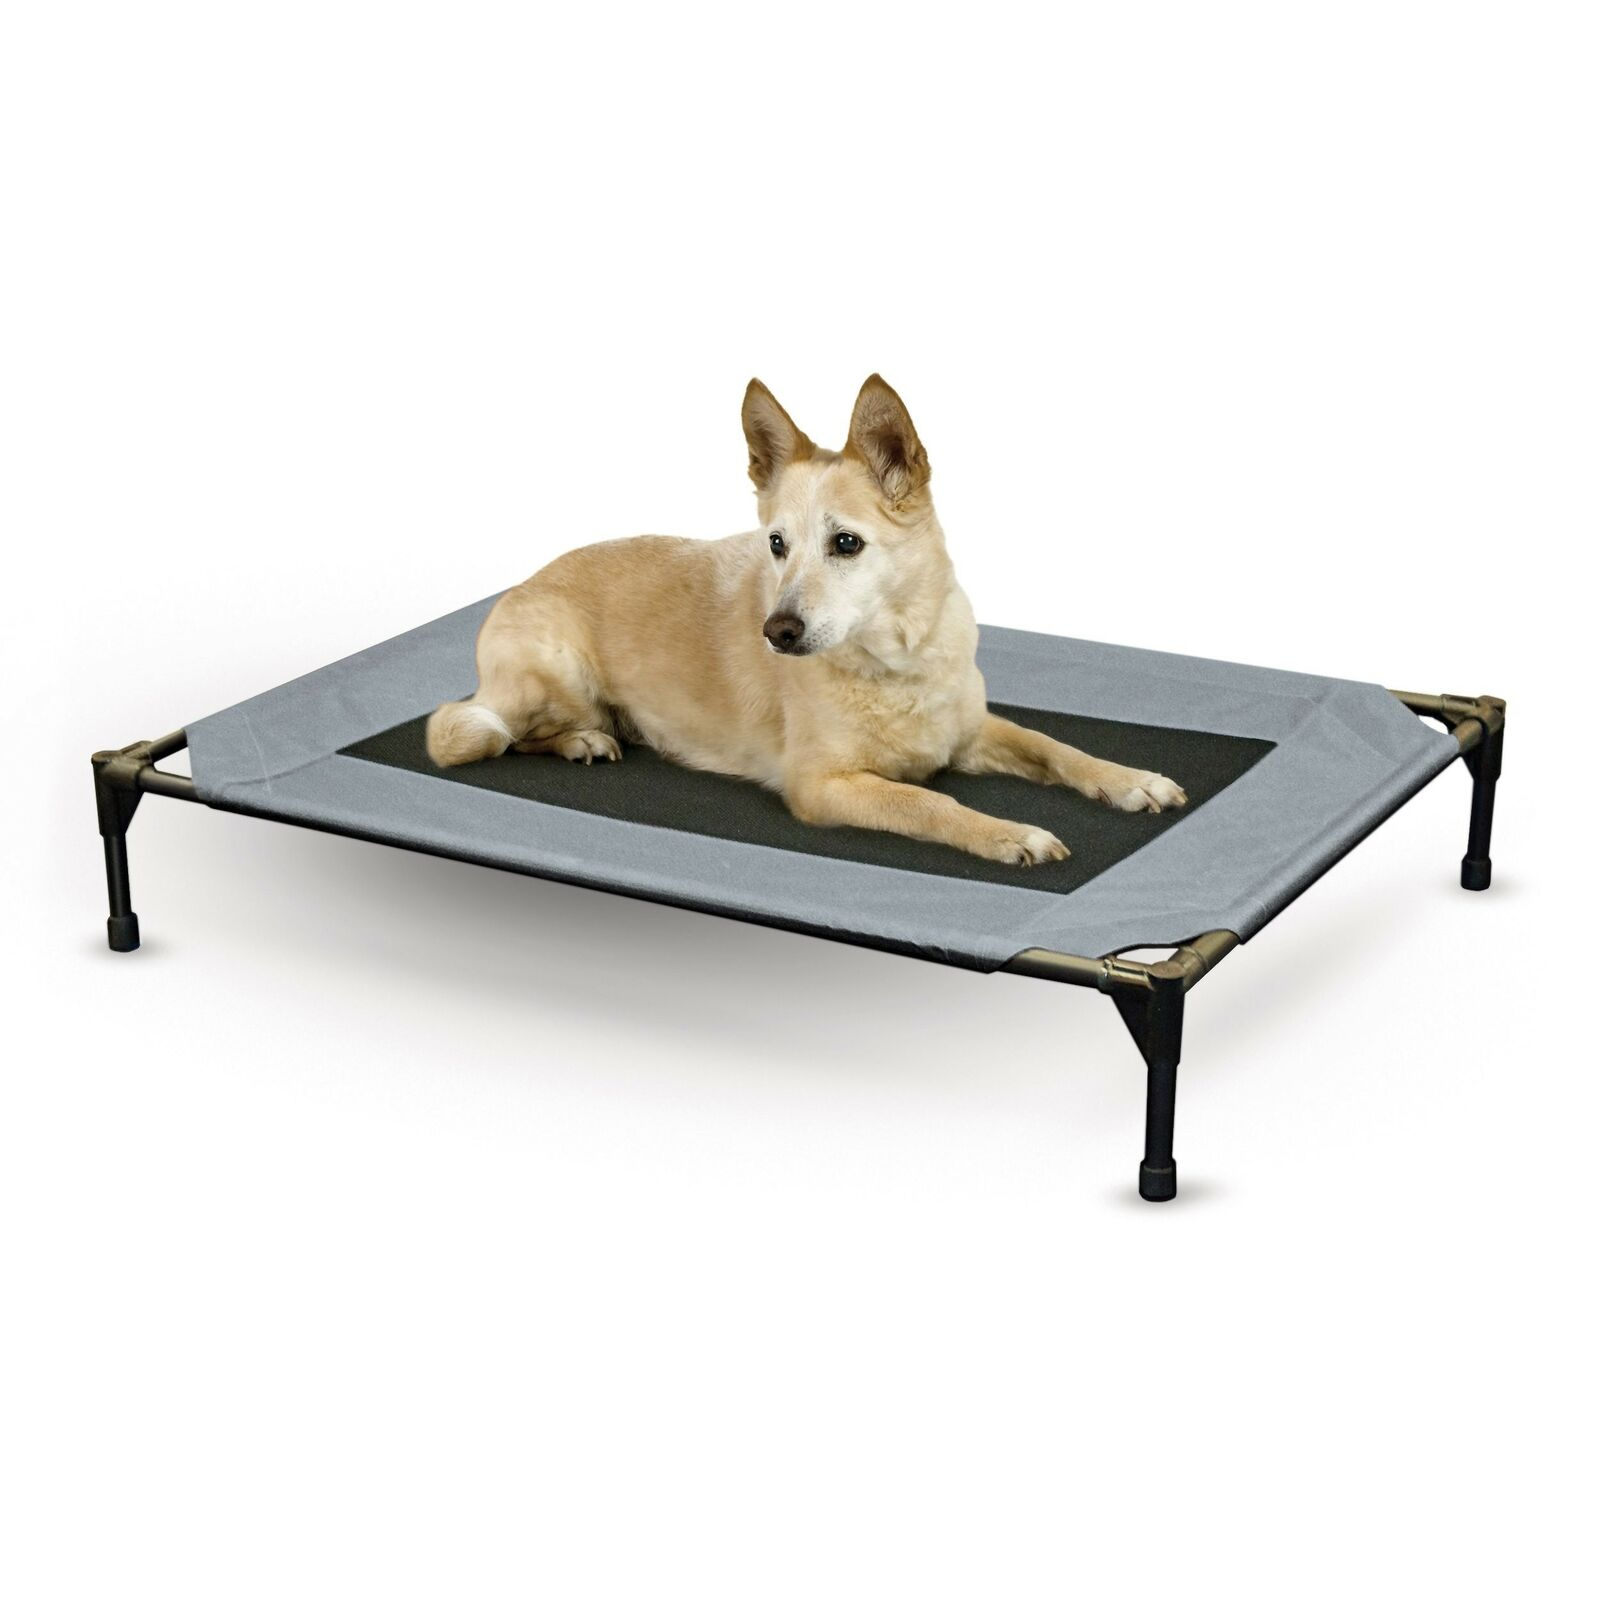 K & H Original Pet Cot Elevated Bed for Dogs Cats, Large Large (30  x 42  x 7 )